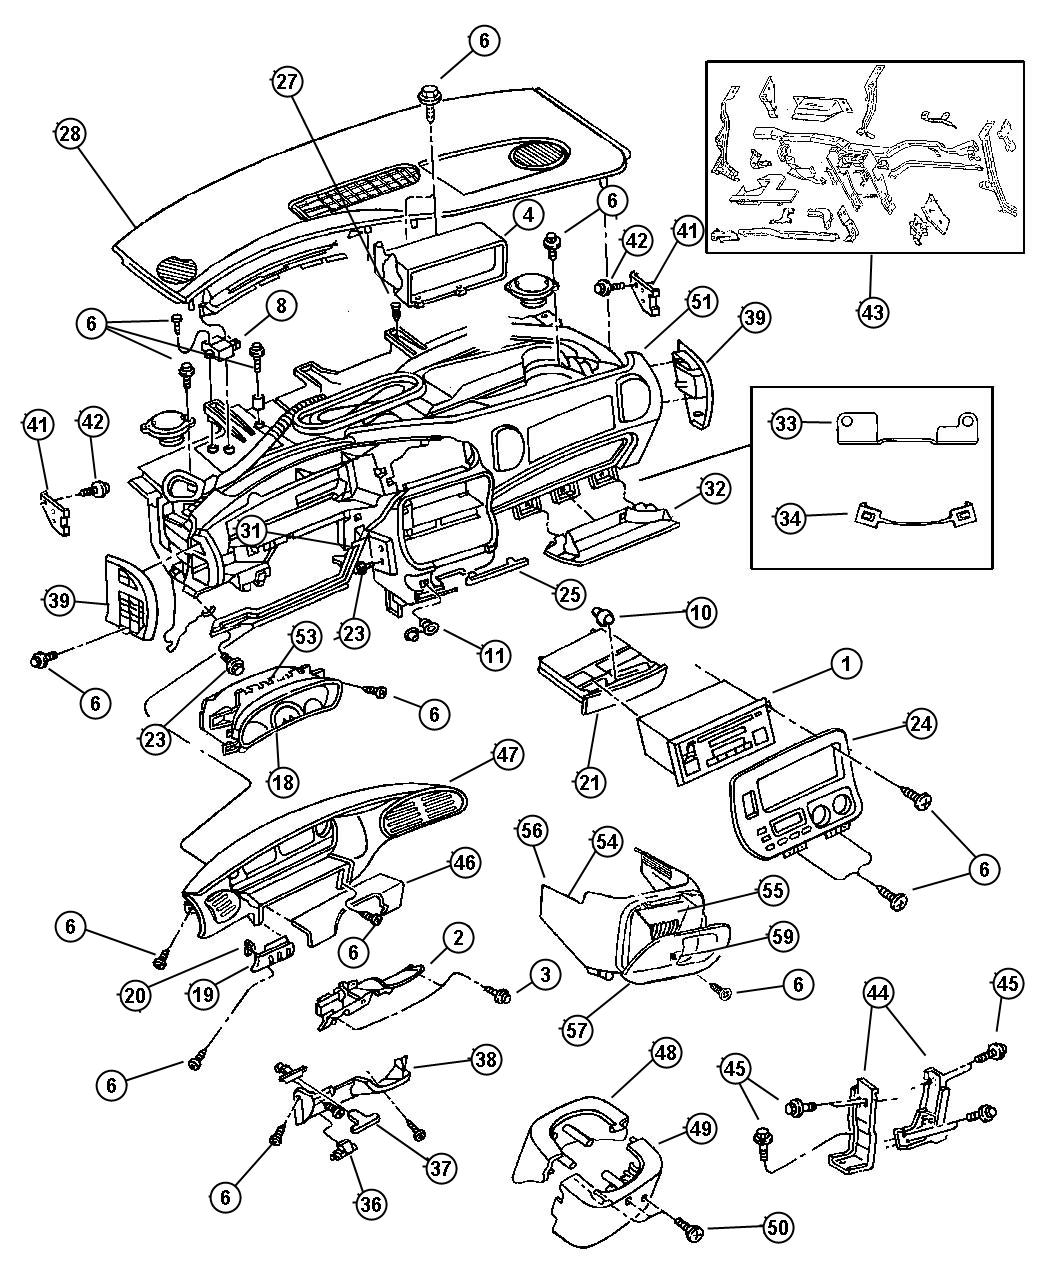 Fuse Box For Chrysler Voyager Wiring Library 2002 Diagram Plymouth Engine Another Blog About U2022 2006 300